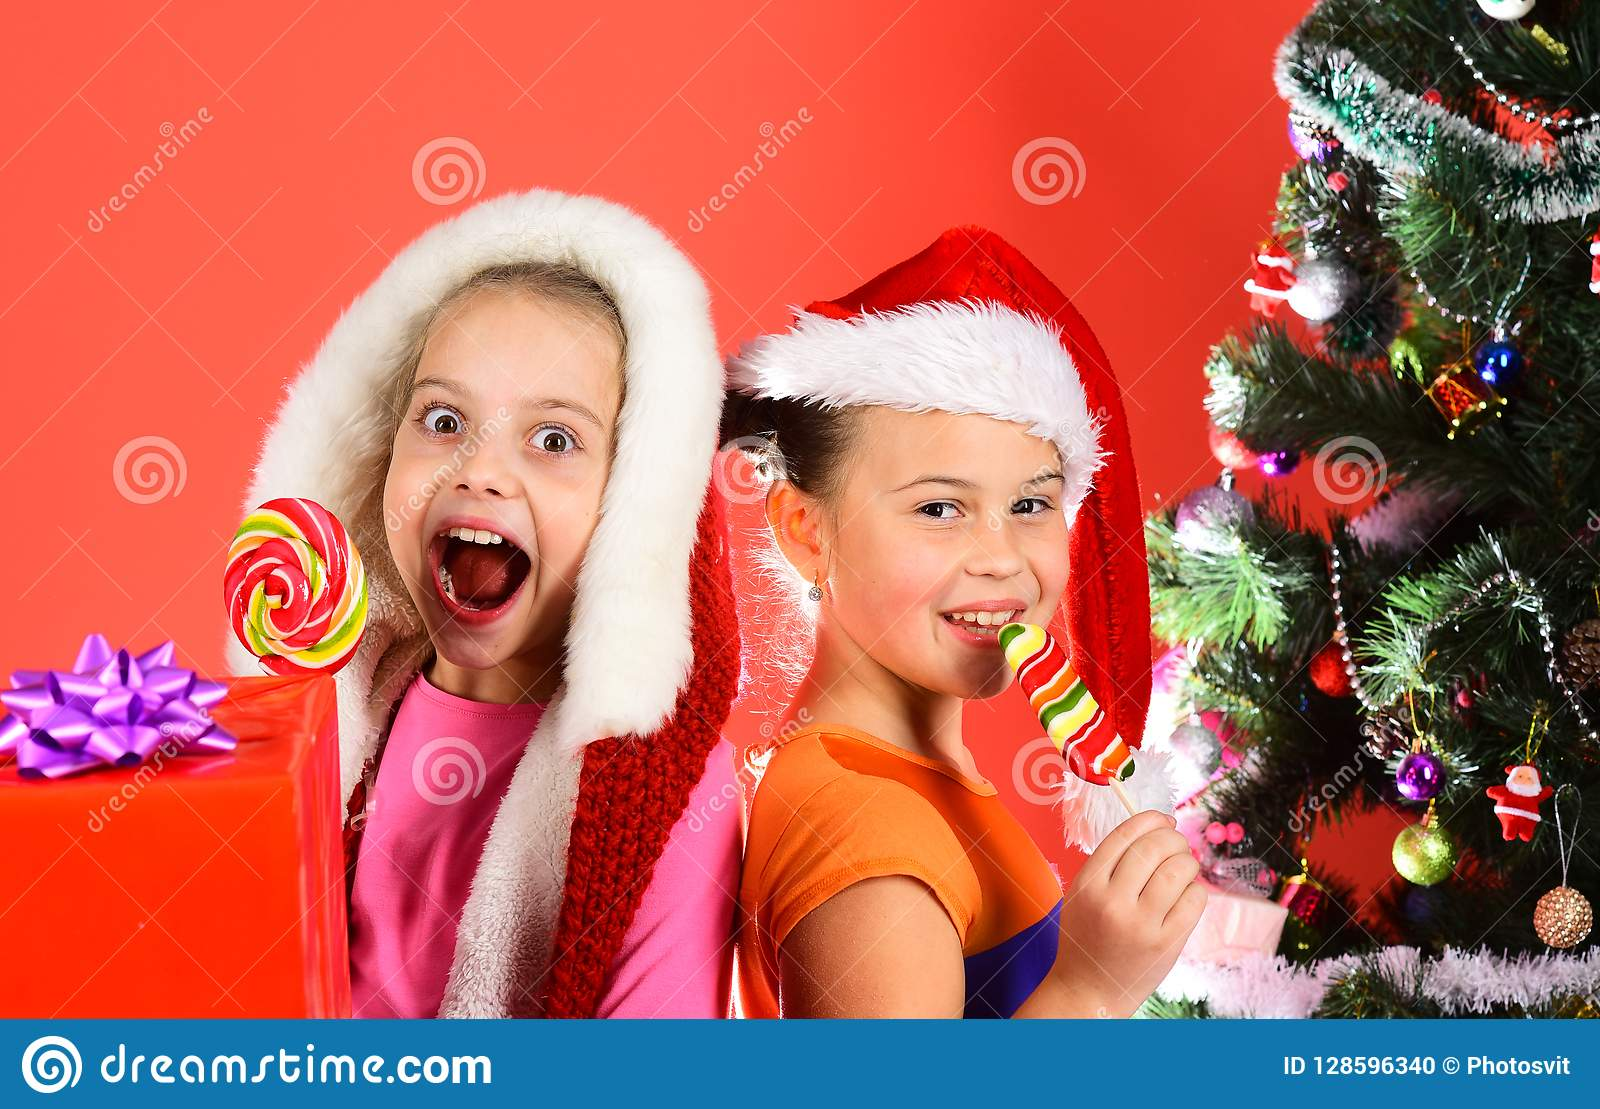 819e0b050 Childhood And Happiness Concept. Kids In Santa Hats Stock Photo ...